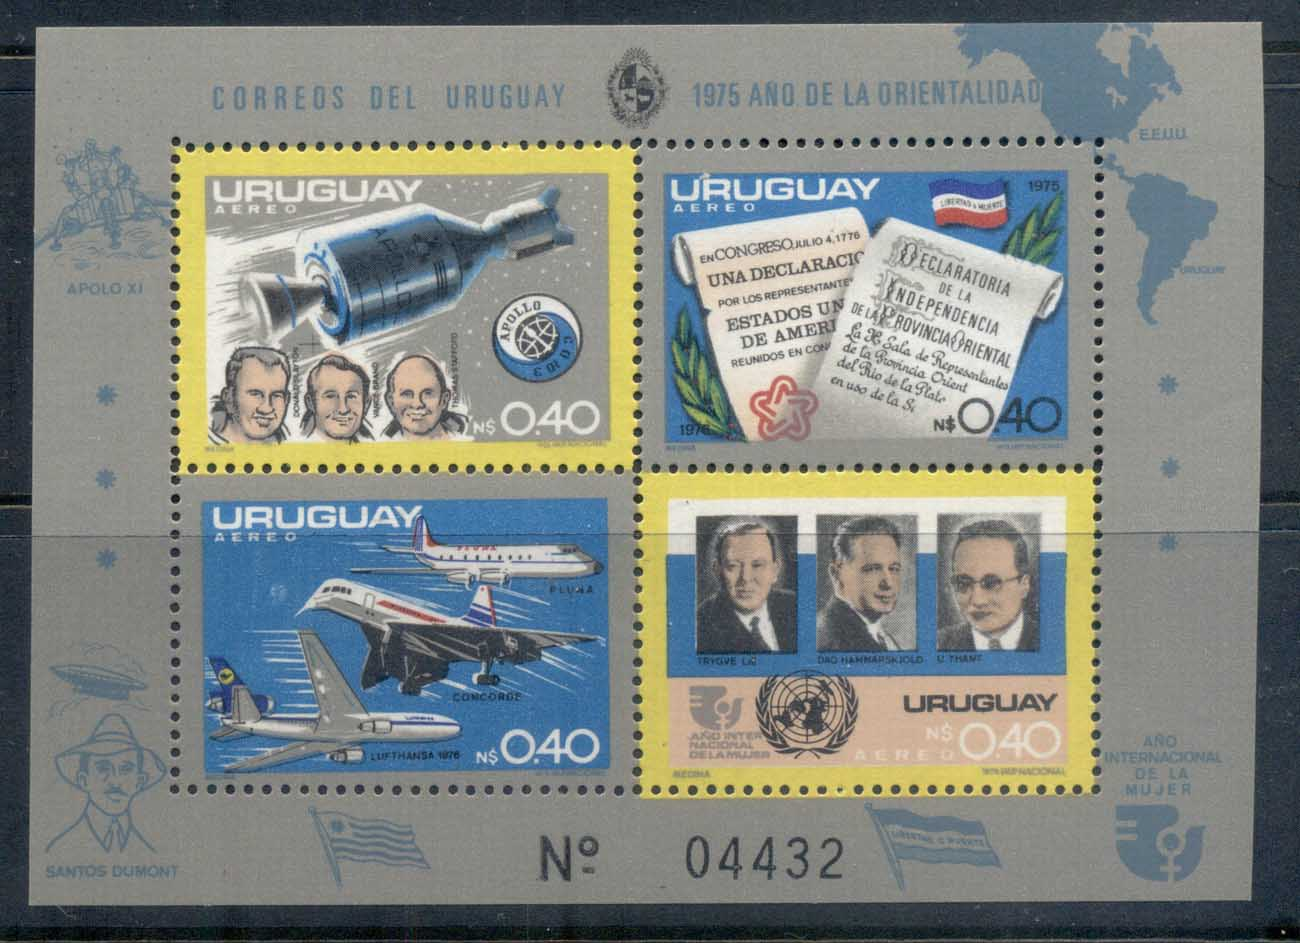 Uruguay 1975 Apollo-Soyuz Joint Russia/USA Space Project MS II MUH